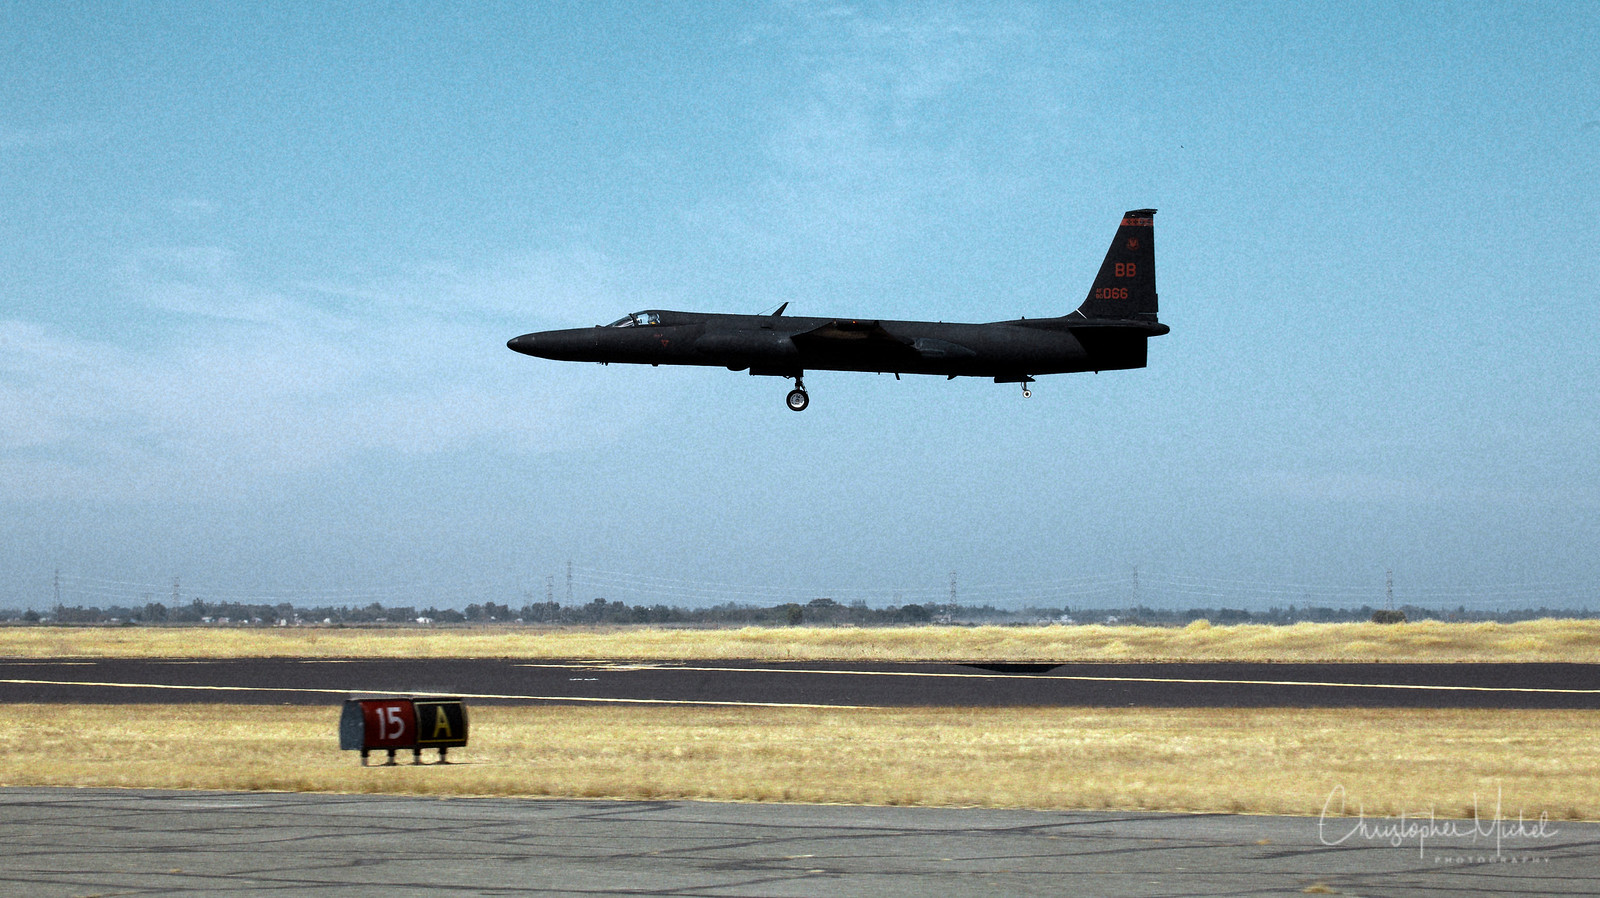 """U-2 preparing to land at Beale AFB.  Note there are only fore and aft bicycle landing gear.  The wingtips have titanium braces, allowing the aircraft to """"tip over"""" during landing rollout."""